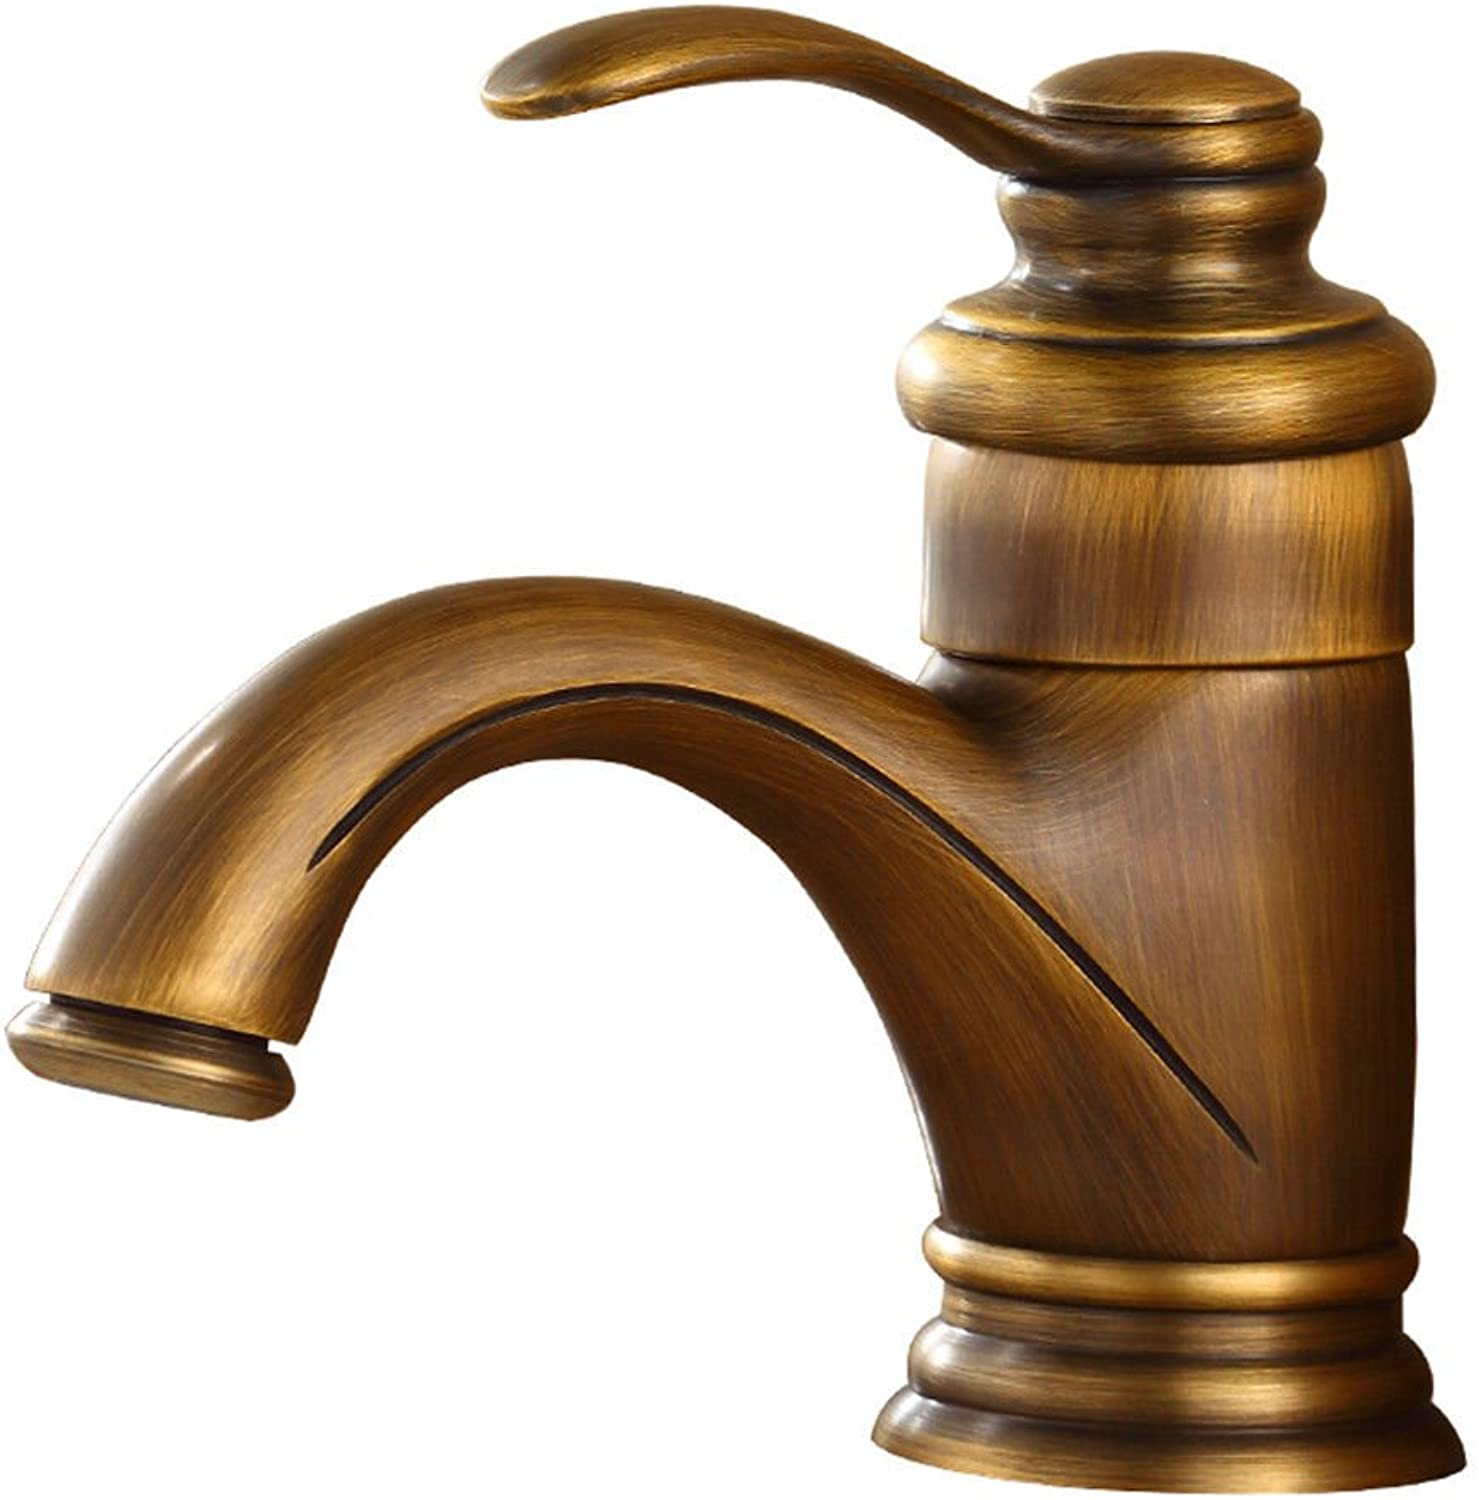 Lalaky Taps Faucet Kitchen Mixer Sink Waterfall Bathroom Mixer Basin Mixer Tap for Kitchen Bathroom and Washroom Antique Copper Hot and Cold Water Retro